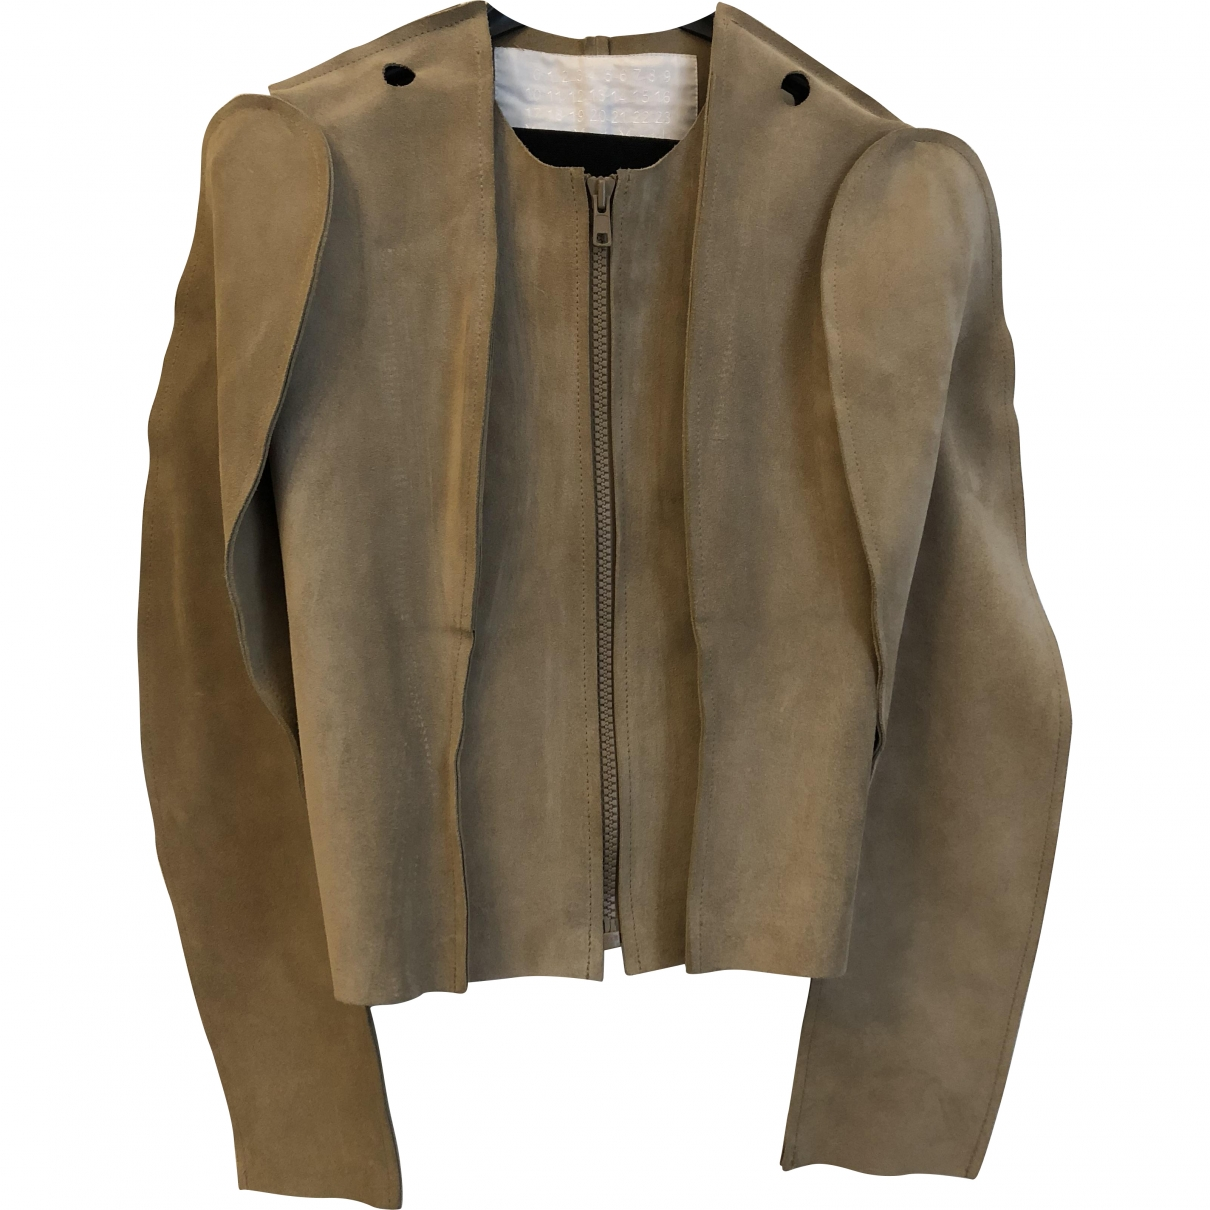 Maison Martin Margiela Pour H&m \N Beige Leather jacket for Women XS International